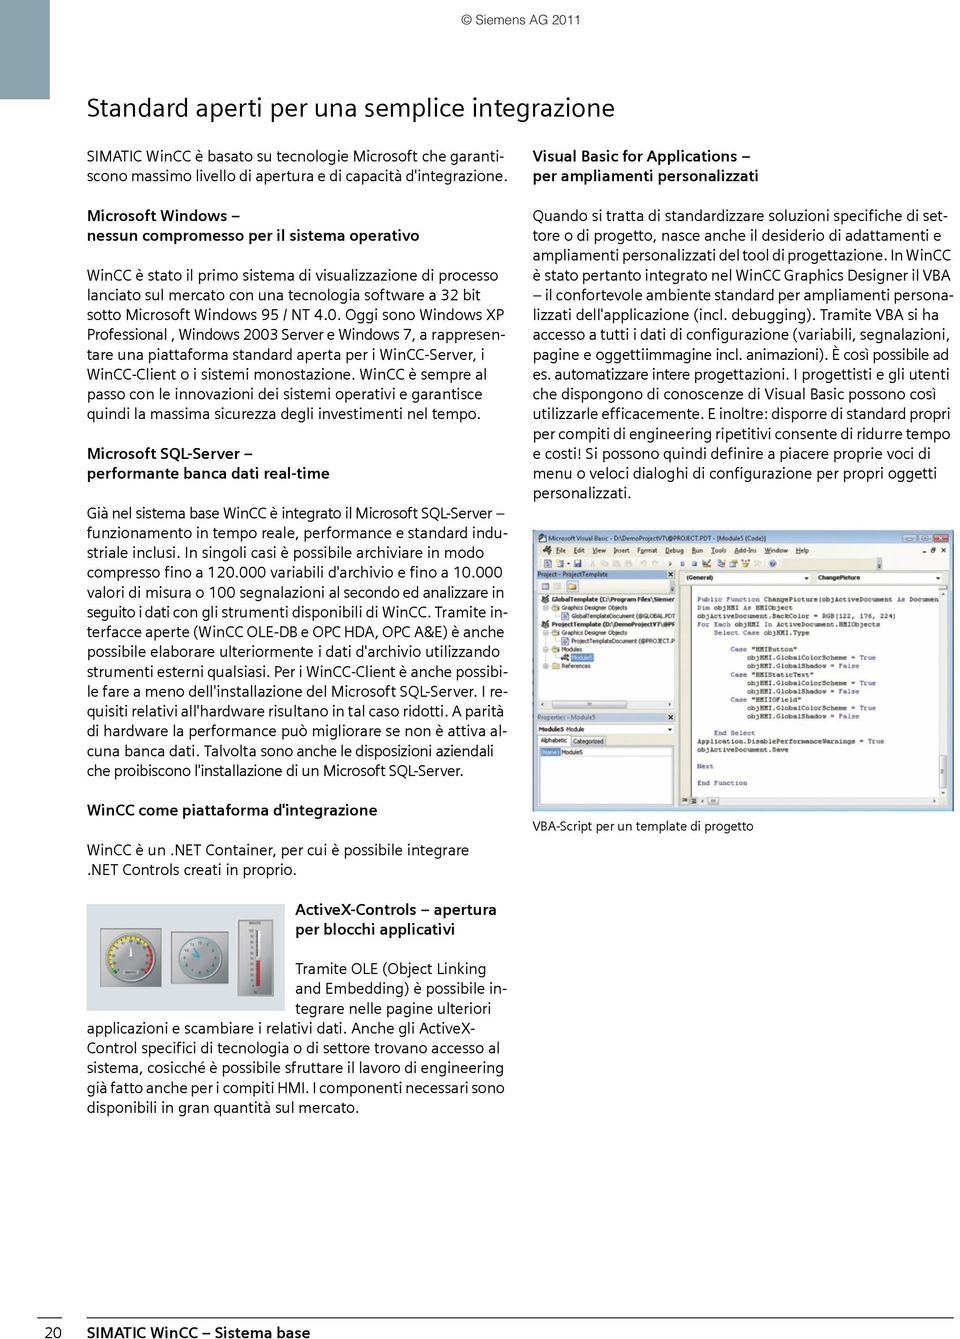 Windows 95 / NT 4.0. Oggi sono Windows XP Professional, Windows 2003 Server e Windows 7, a rappresentare una piattaforma standard aperta per i WinCC-Server, i WinCC-Client o i sistemi monostazione.